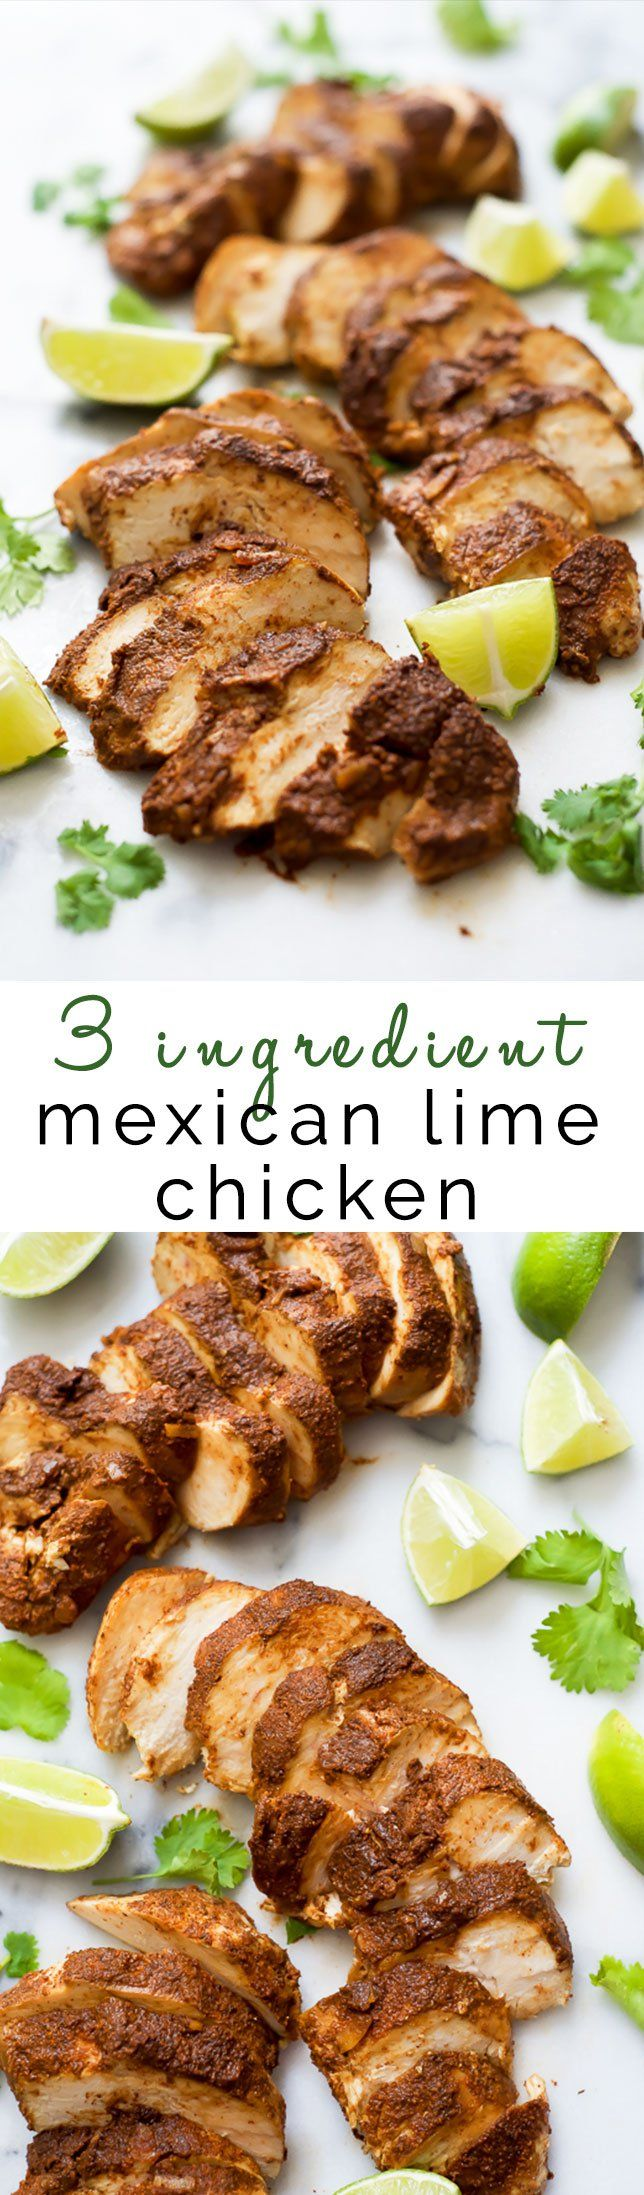 3 Ingredient Mexican Lime Chicken is a flavorful and amazingly delicious chicken that couldn't be any simpler to make. Perfect to add to tacos, burritos, tostadas and even salads! It will be your go to soon enough!